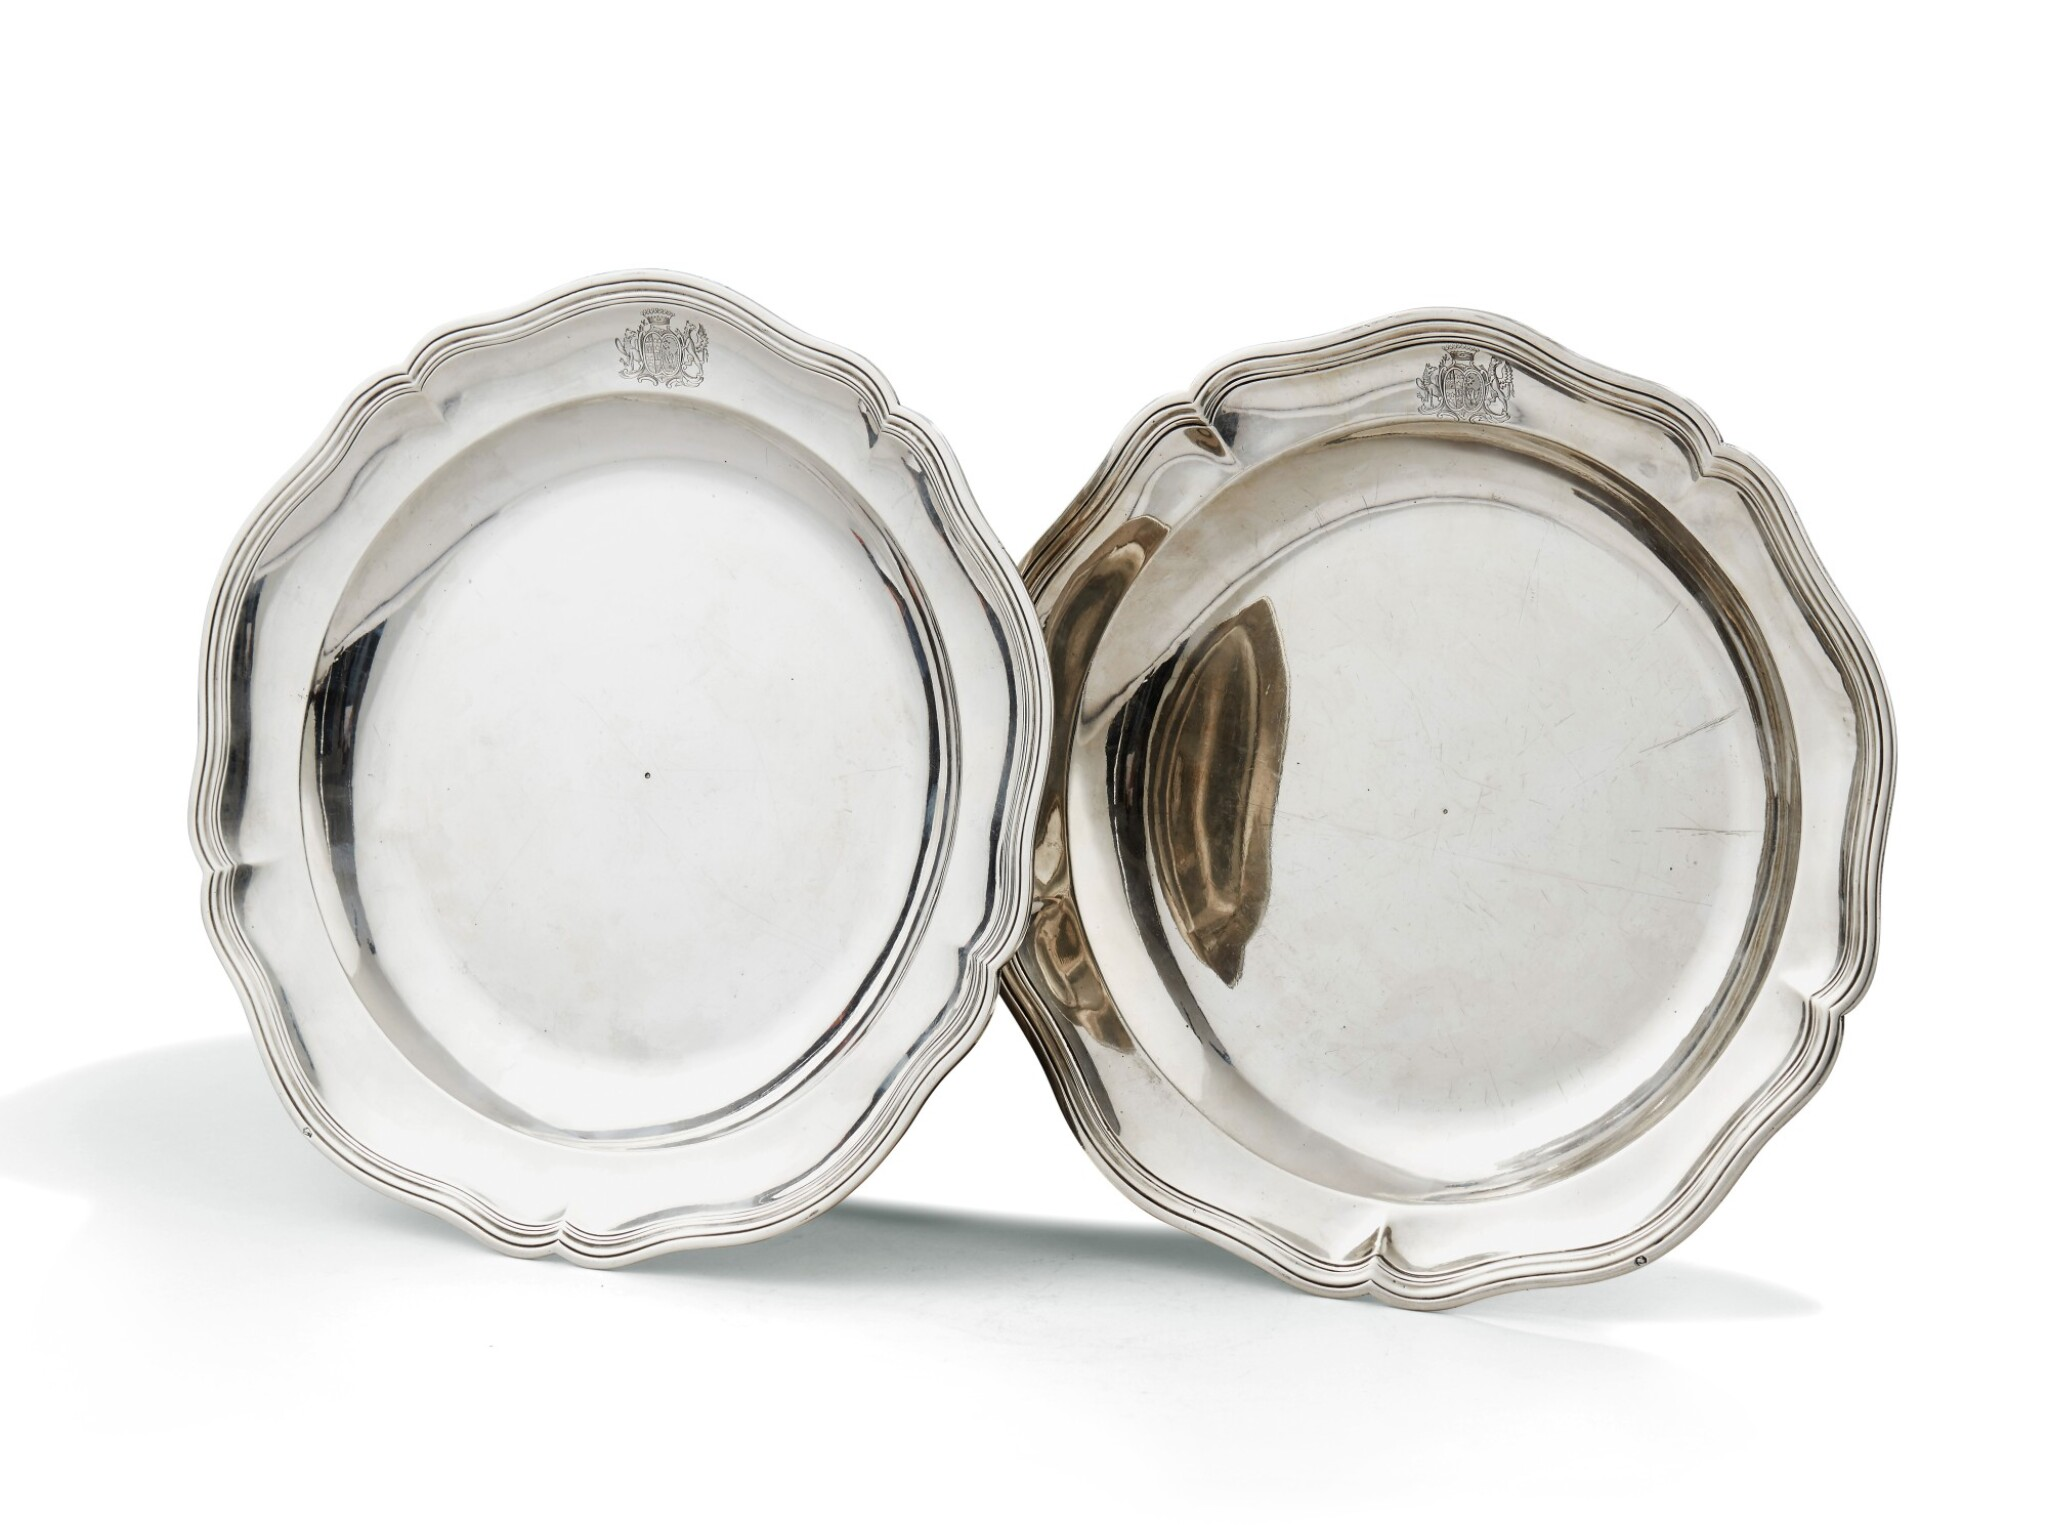 View full screen - View 1 of Lot 173. TWO SILVER CIRCULAR DISHES, PARIS, ONE GUILLAUME PIGERON, 1766-1767, THE OTHER EDME-PIERRE BALZAC, 1750-1751 |  DEUX PLATS RONDS EN ARGENT, PARIS, L'UN PAR GUILLAUME PIGERON, 1766-1767, L'AUTRE PAR EDME-PIERRE BALZAC, 1750-1751.